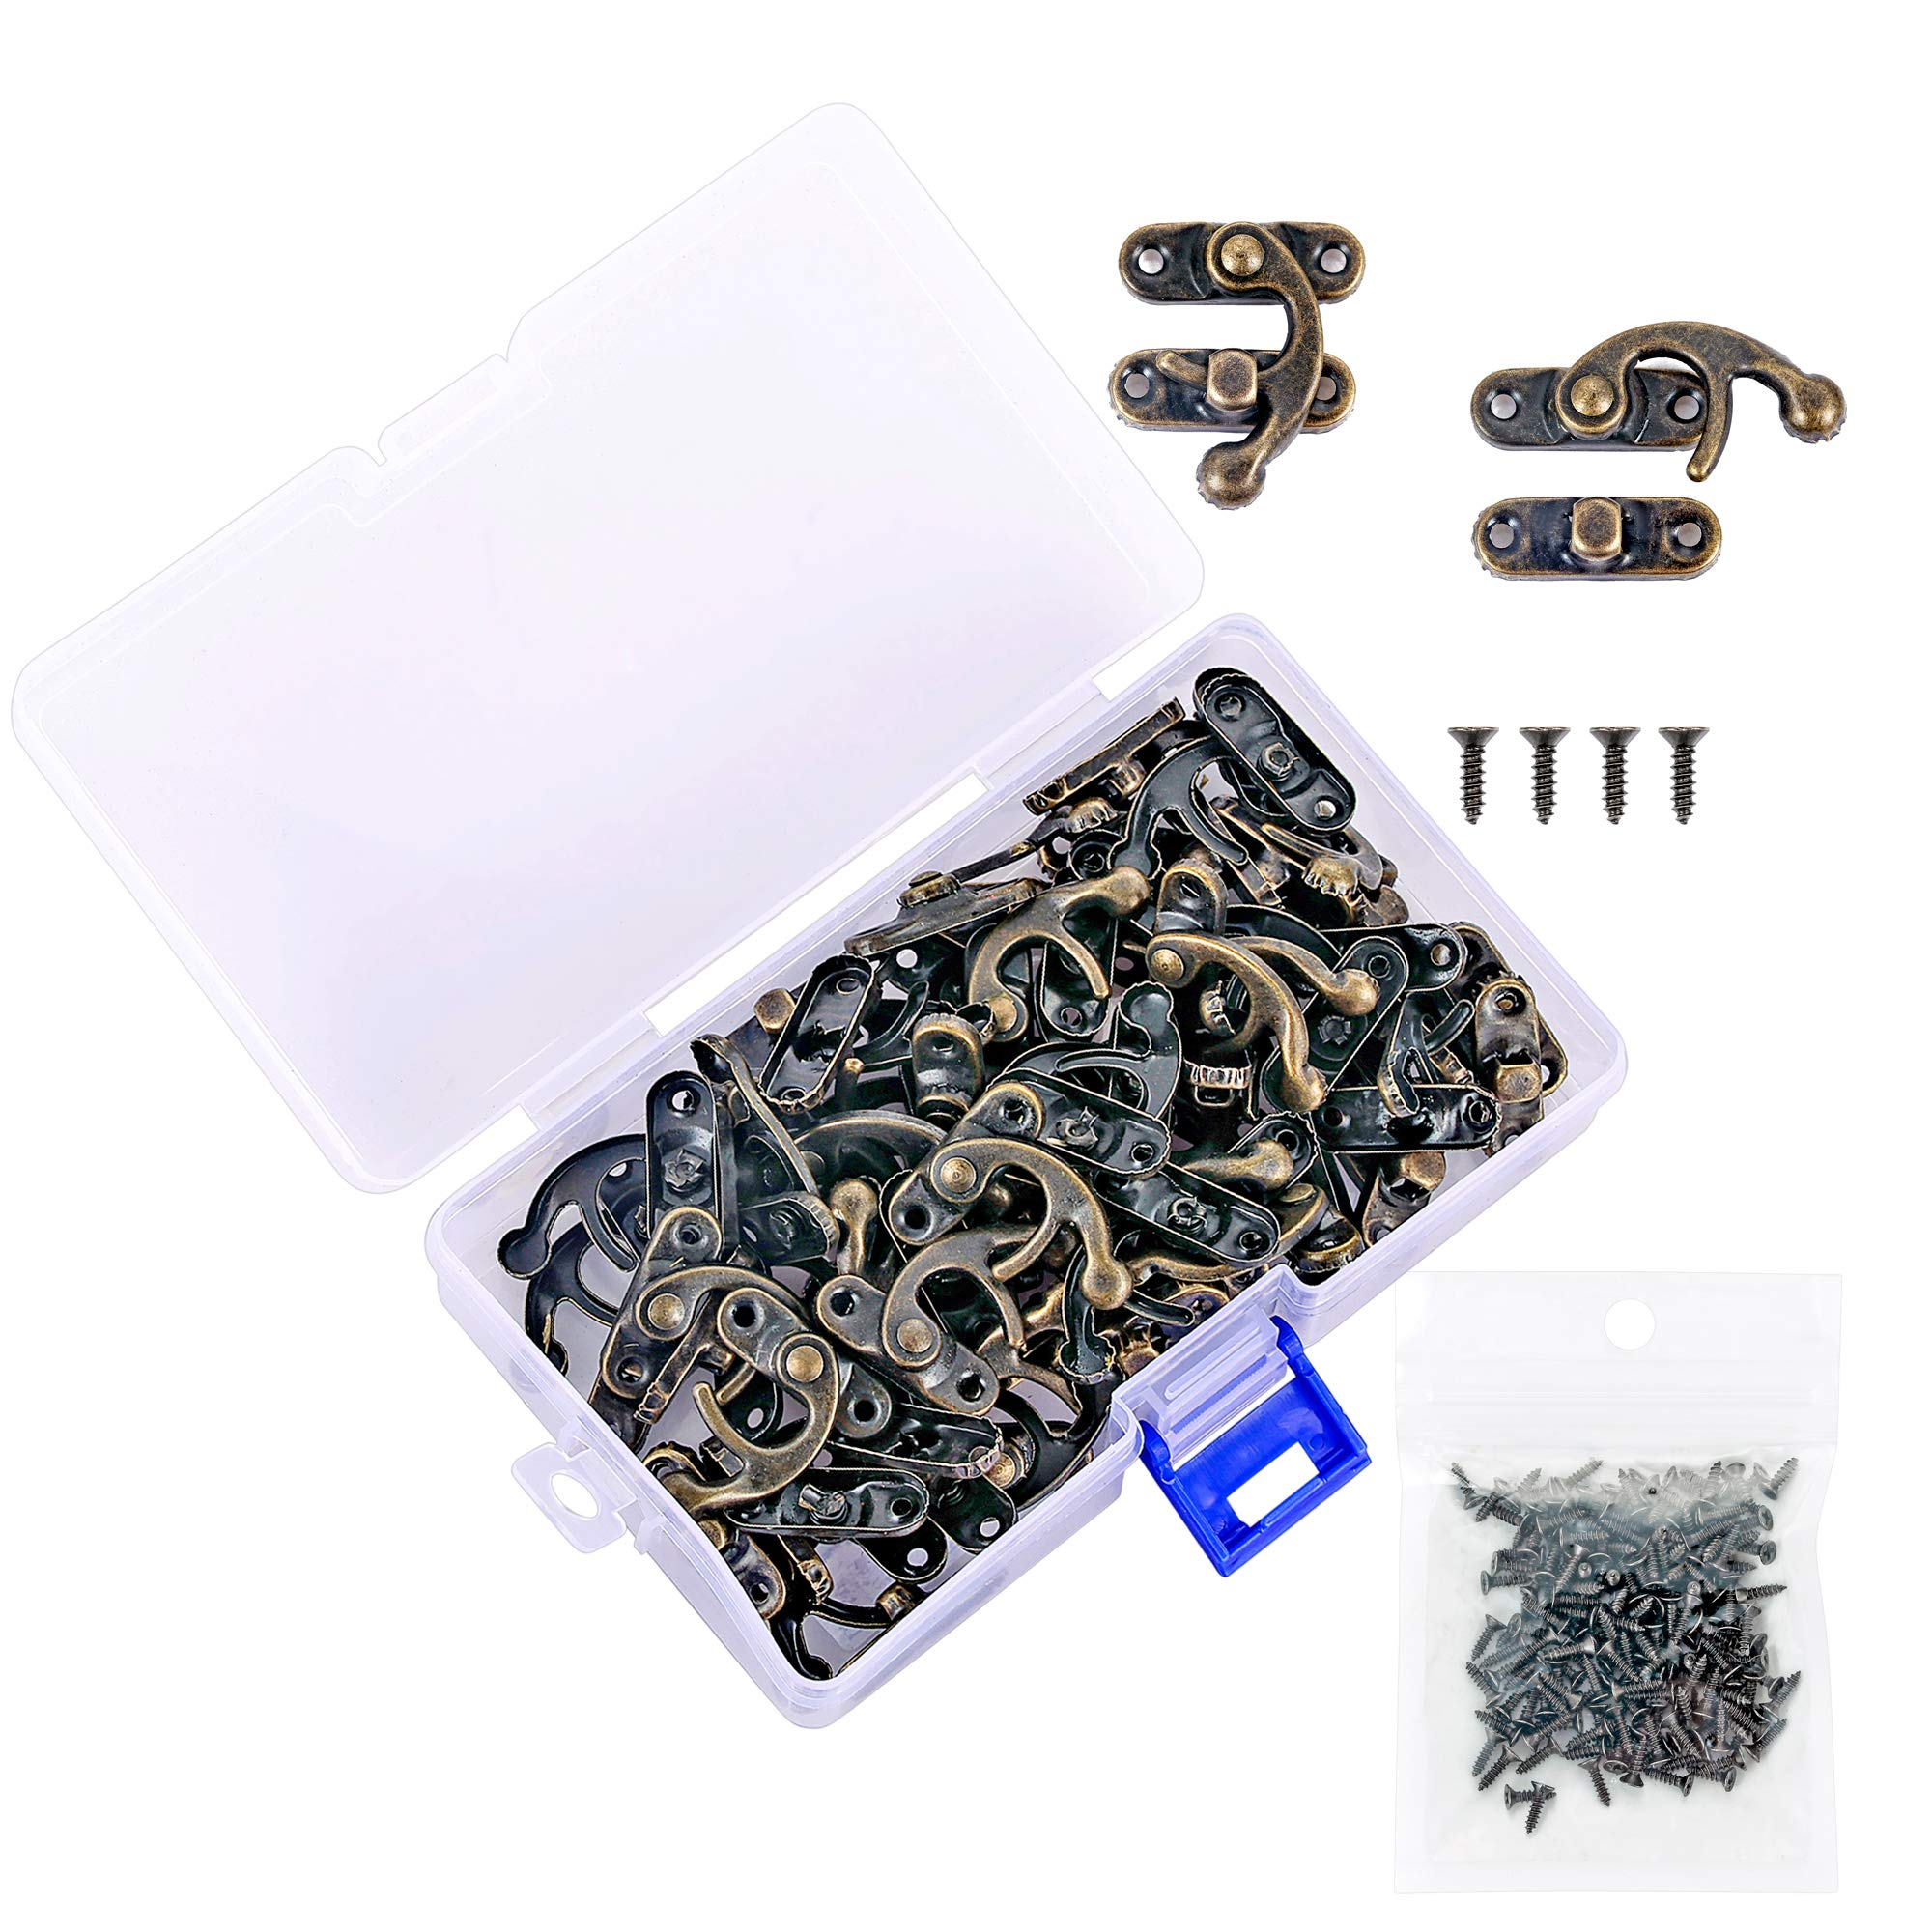 PGMJ 40 Pieces Bronze Tone Antique Right Latch Hook Hasp Horn Lock Wood Jewellery Box Latch Hook Clasp and 160 Replacement Screws (Right Latch Buckle)